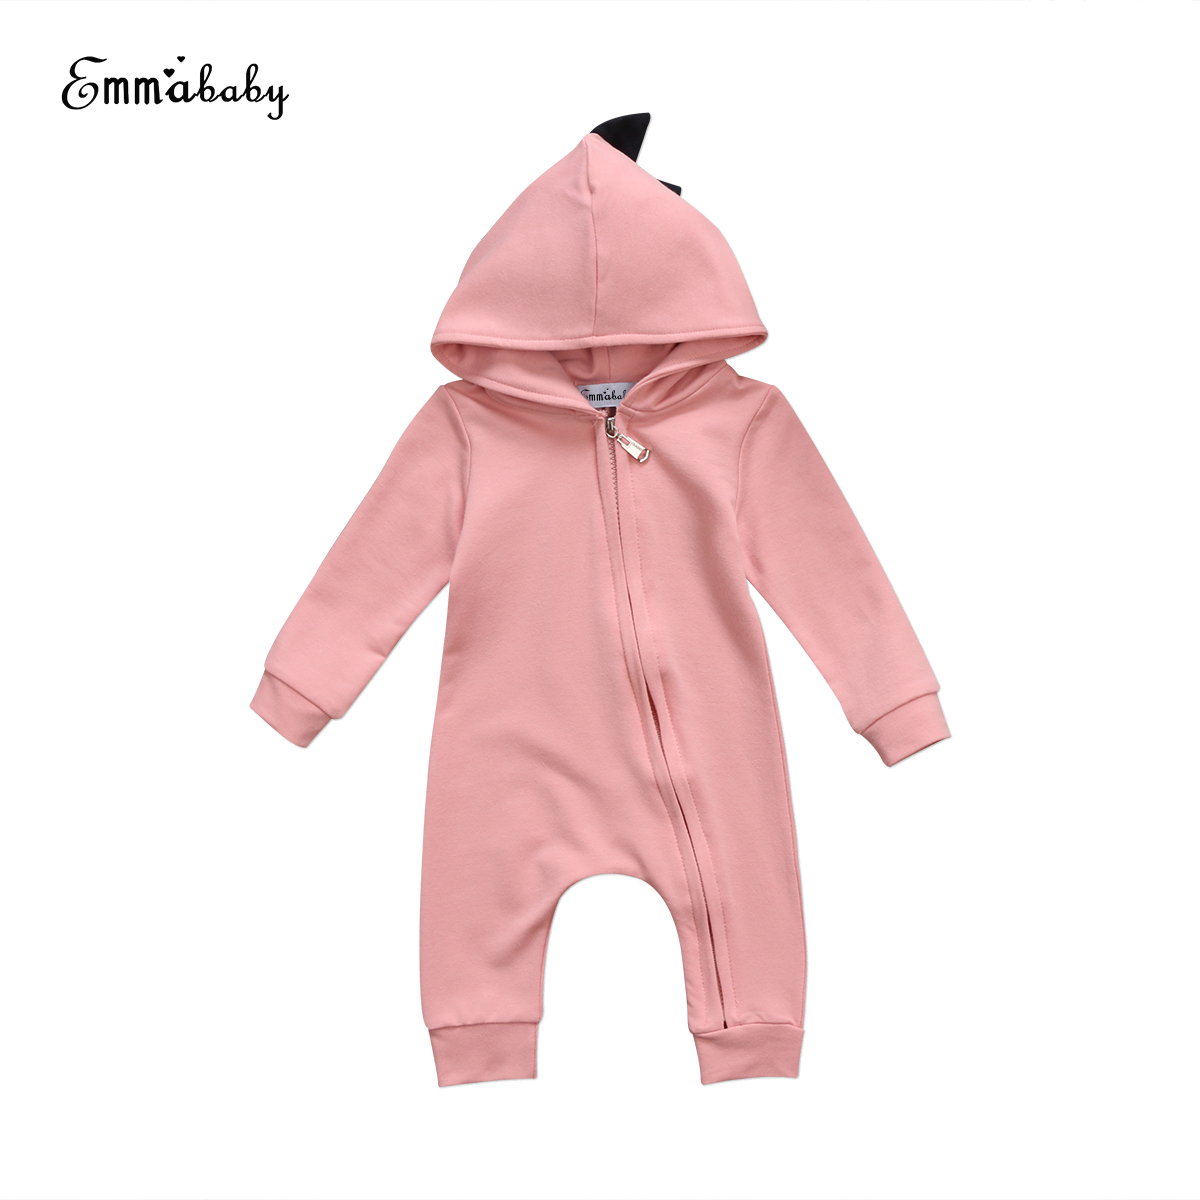 2018 new lovely kid rompers Newborn Baby Boy Girl long sleeve Dinosaur Hooded Romper Playsuit solid adorable Outfit Clothes